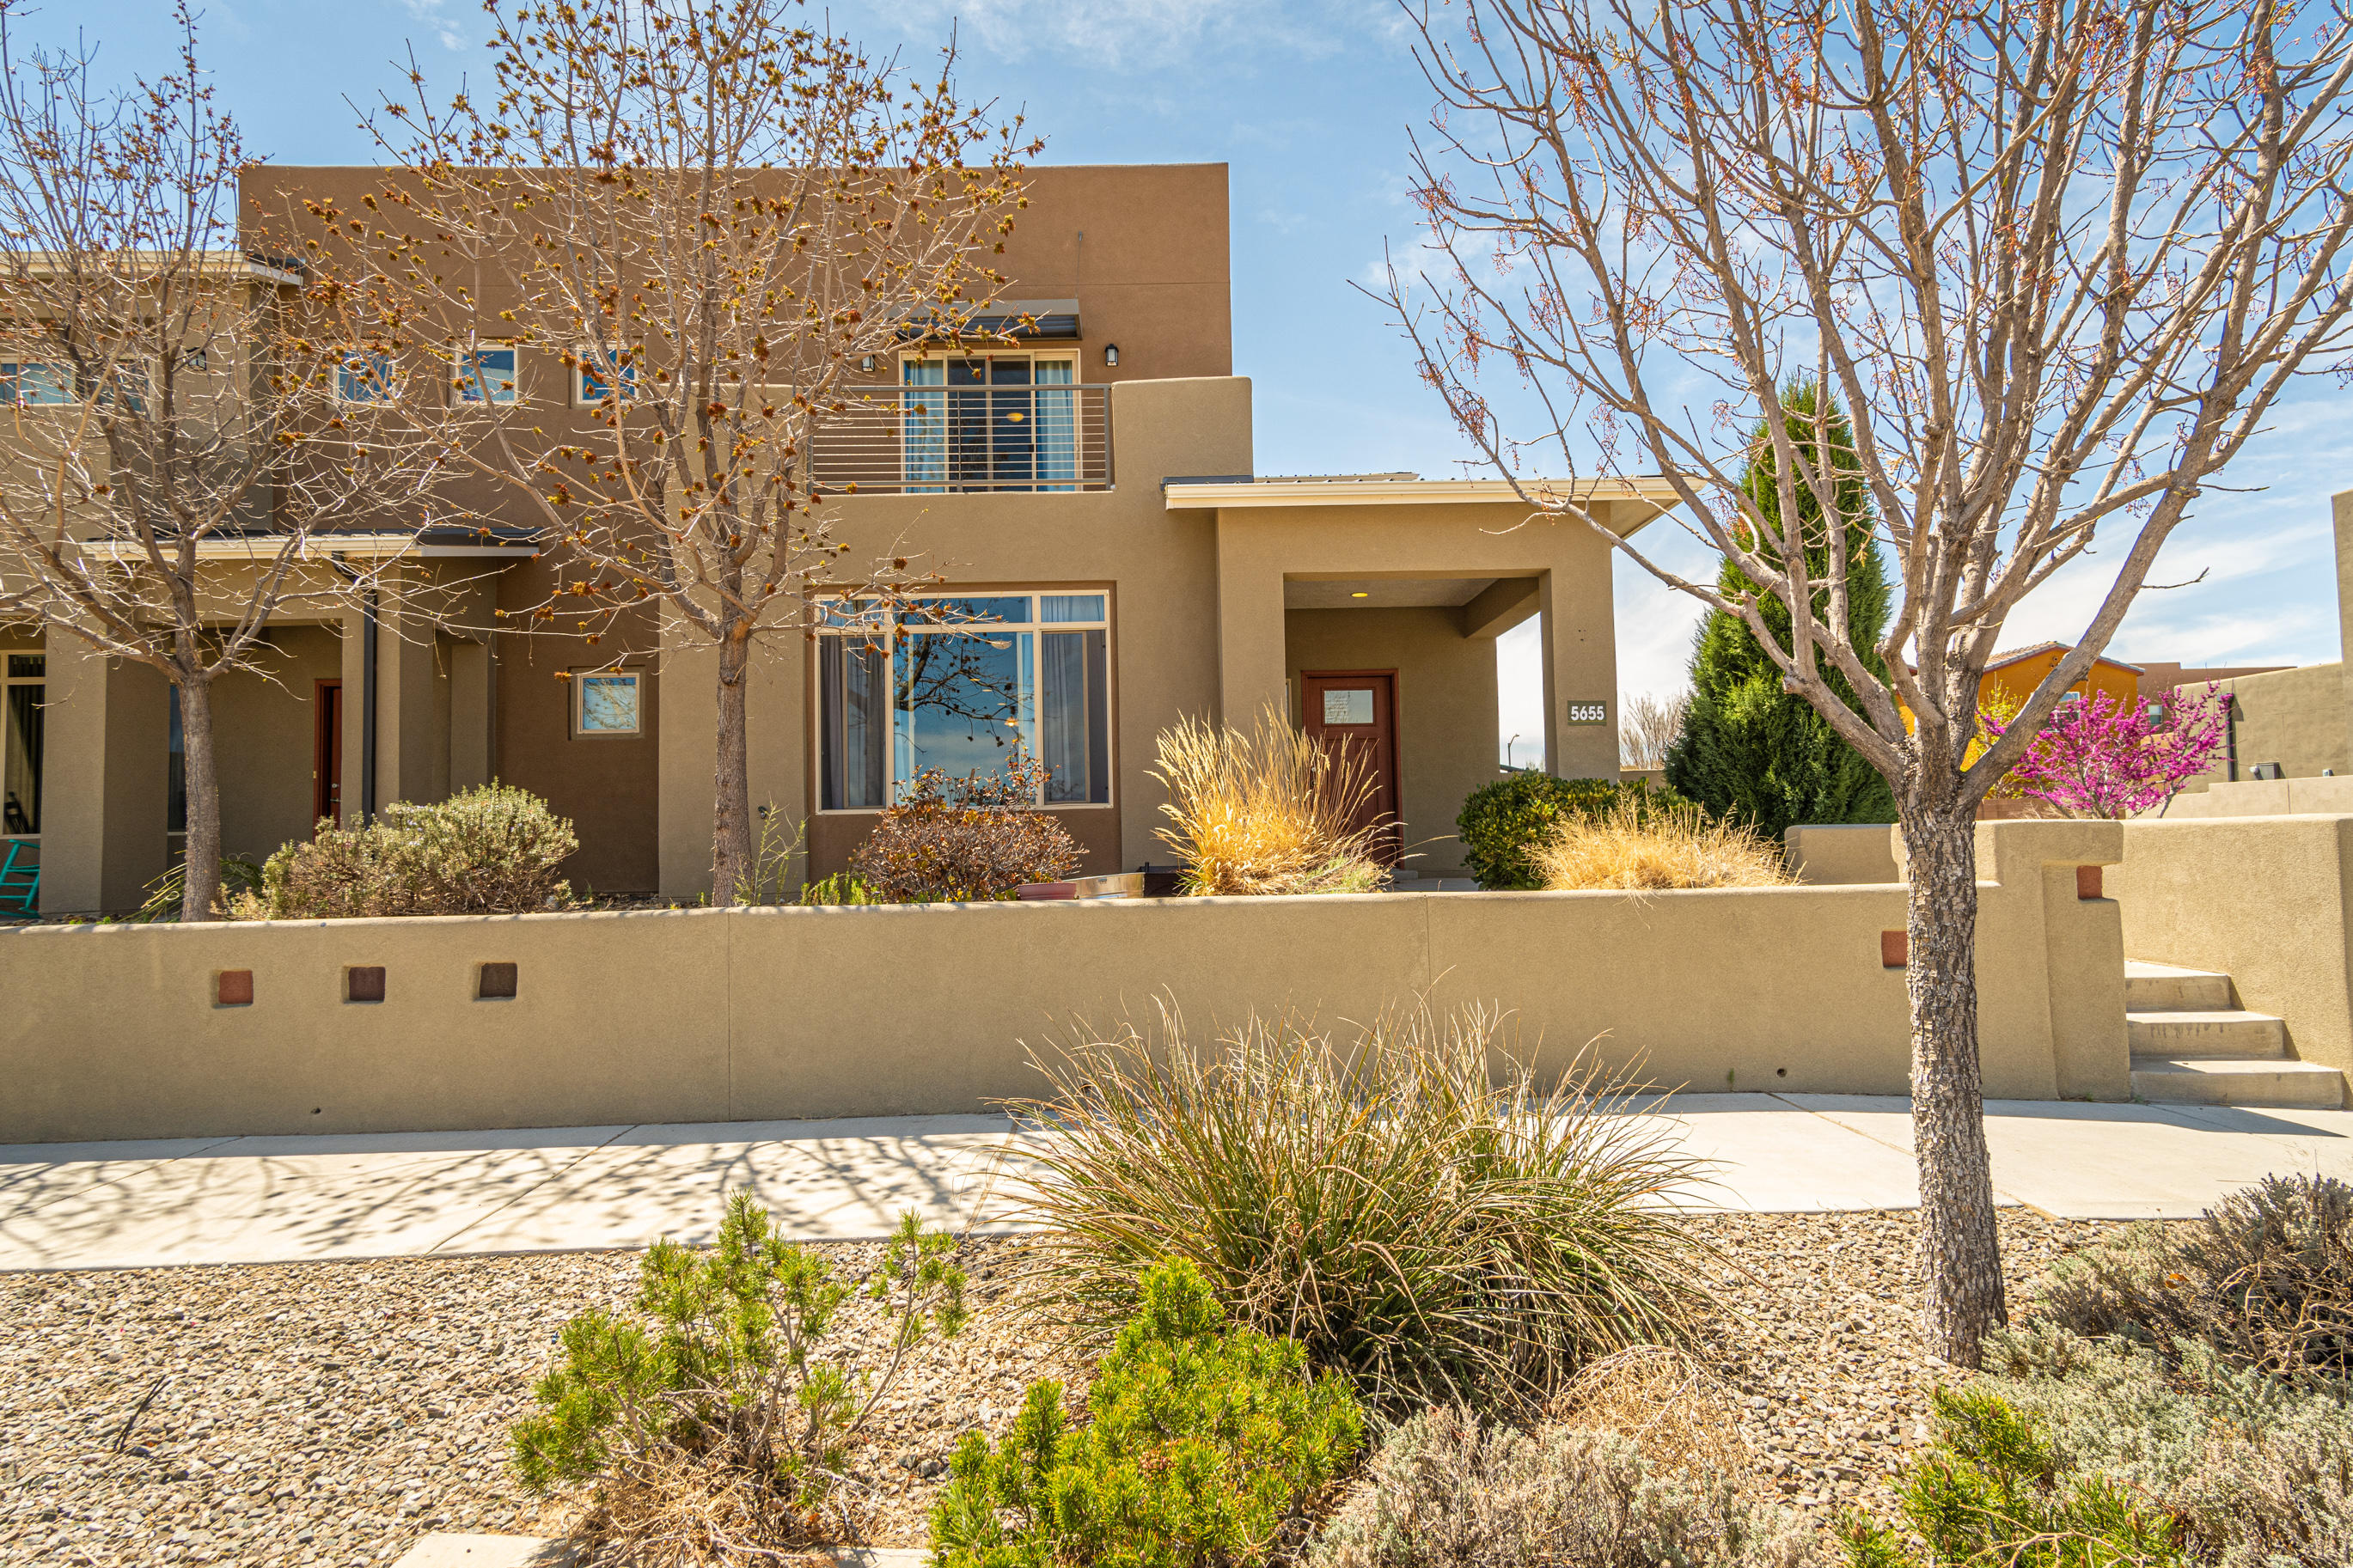 **Under contract, taking back up offers**Beautiful, spacious home on a large corner lot in the quiet subdivision of Mesa del Sol! Open floor plan downstairs, enclosed office, and a large owner's suite make this home your perfect retreat. Enjoy a short walk to the community pool, park, & playground, hiking trails around the neighborhood, lunch at The Eatery, or enjoy a drink on your upstairs patio with a lovely view of the Sandia Mountains!